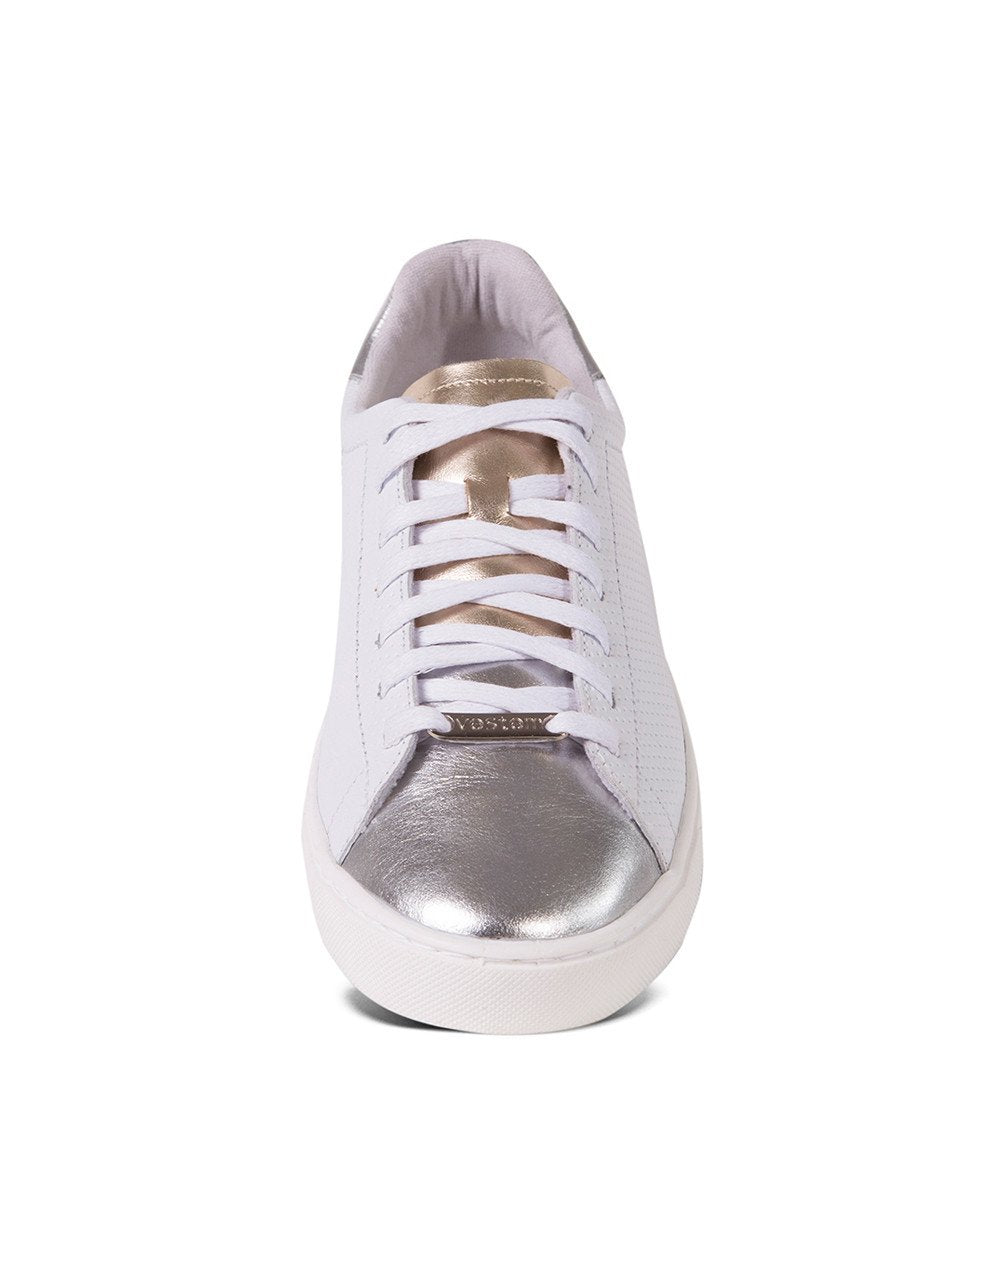 Shoes-SNEAKERS SLIM WHITE with SILVER TIP